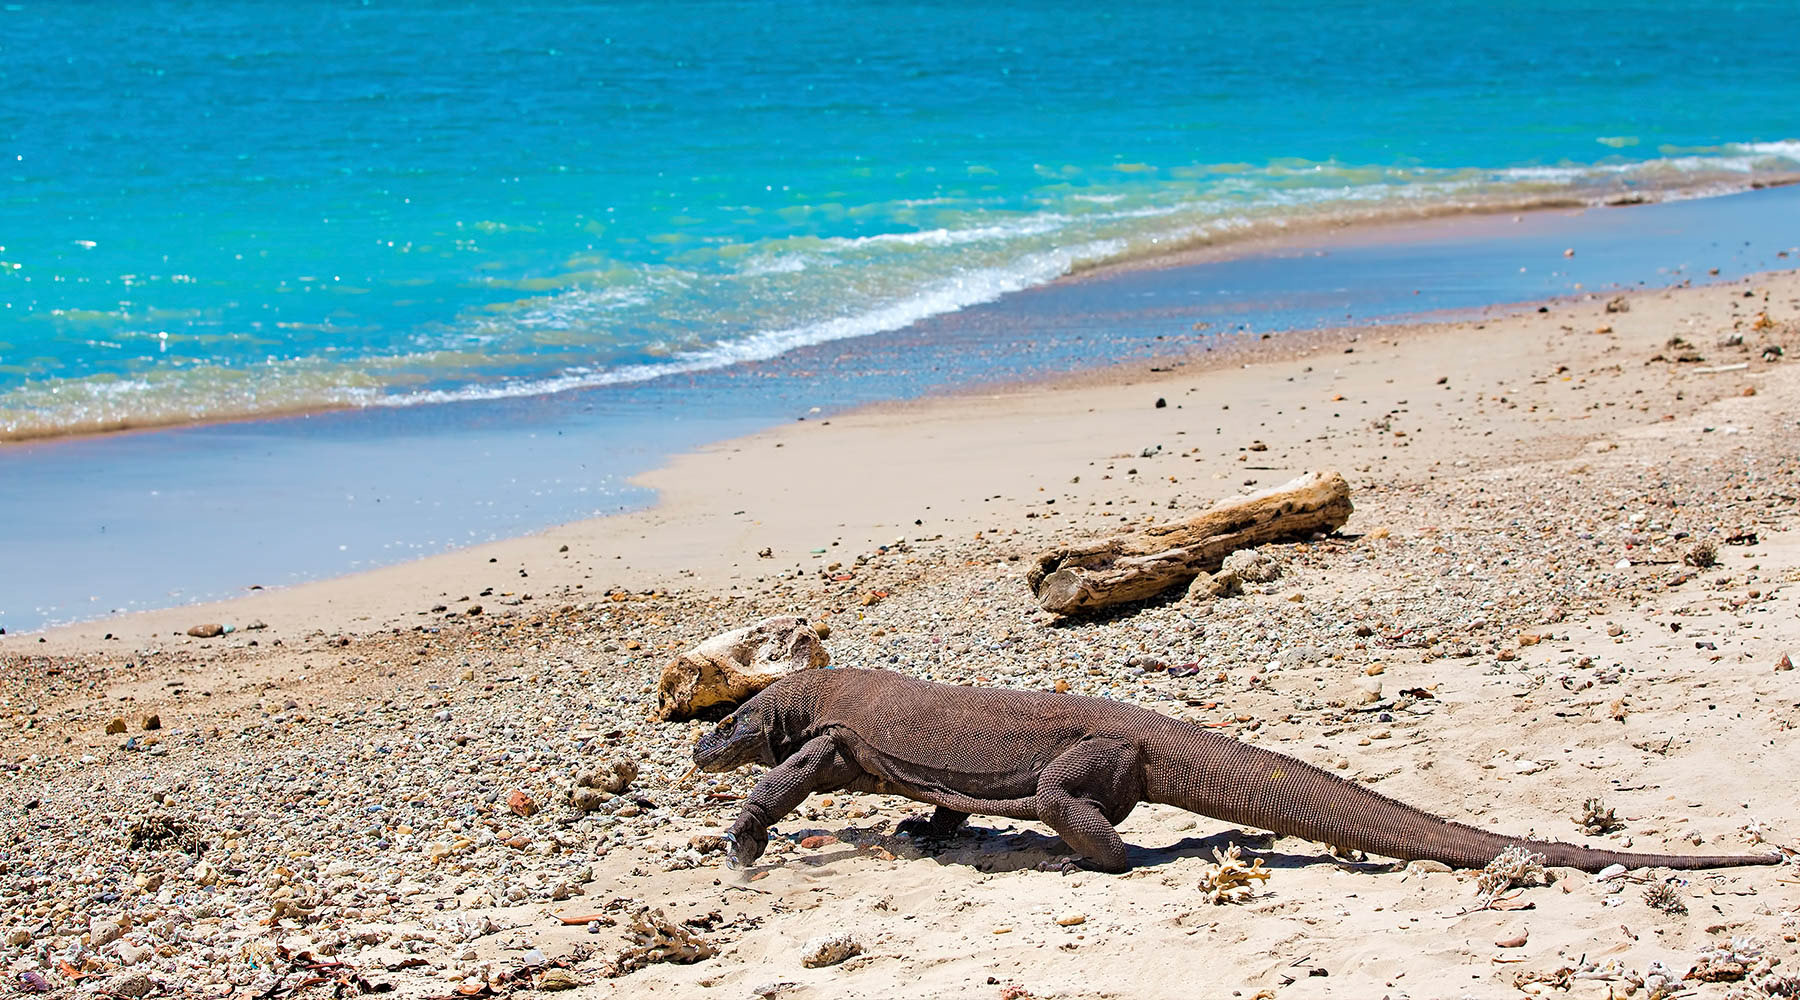 Live from Onboard the Azamara Quest: A Visit To Komodo Island